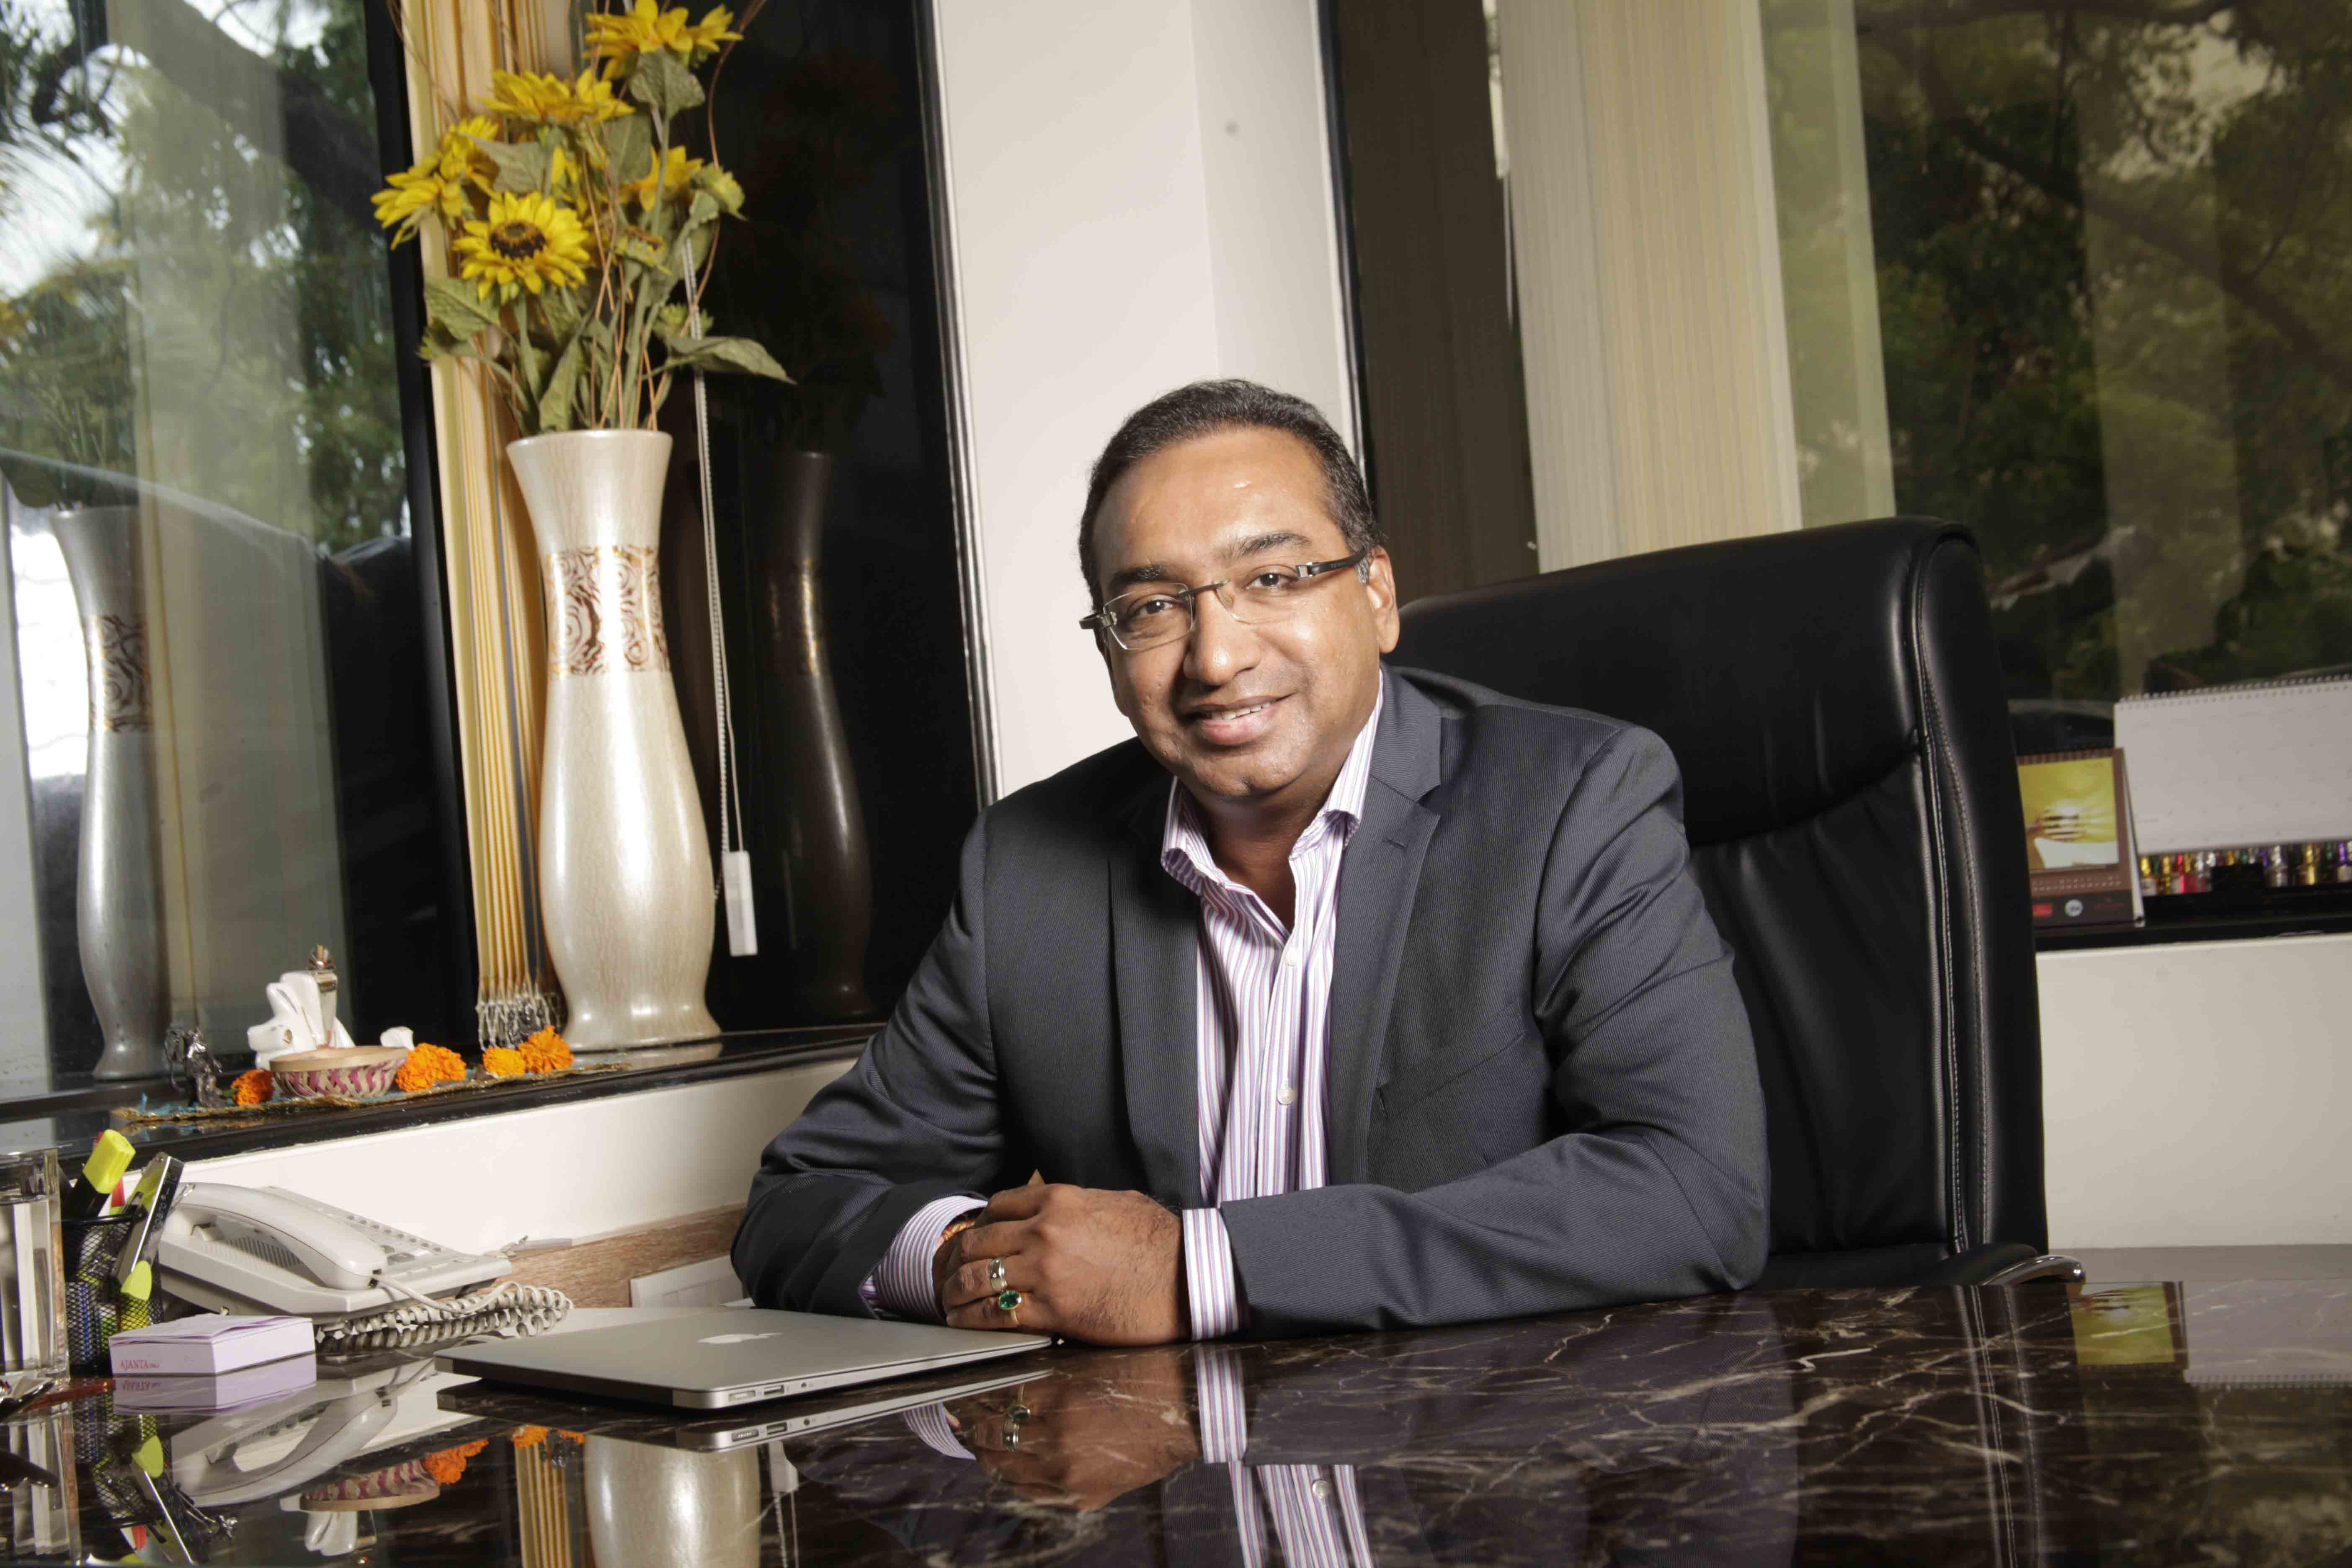 Sameer Nair, CEO, Applause Entertainment